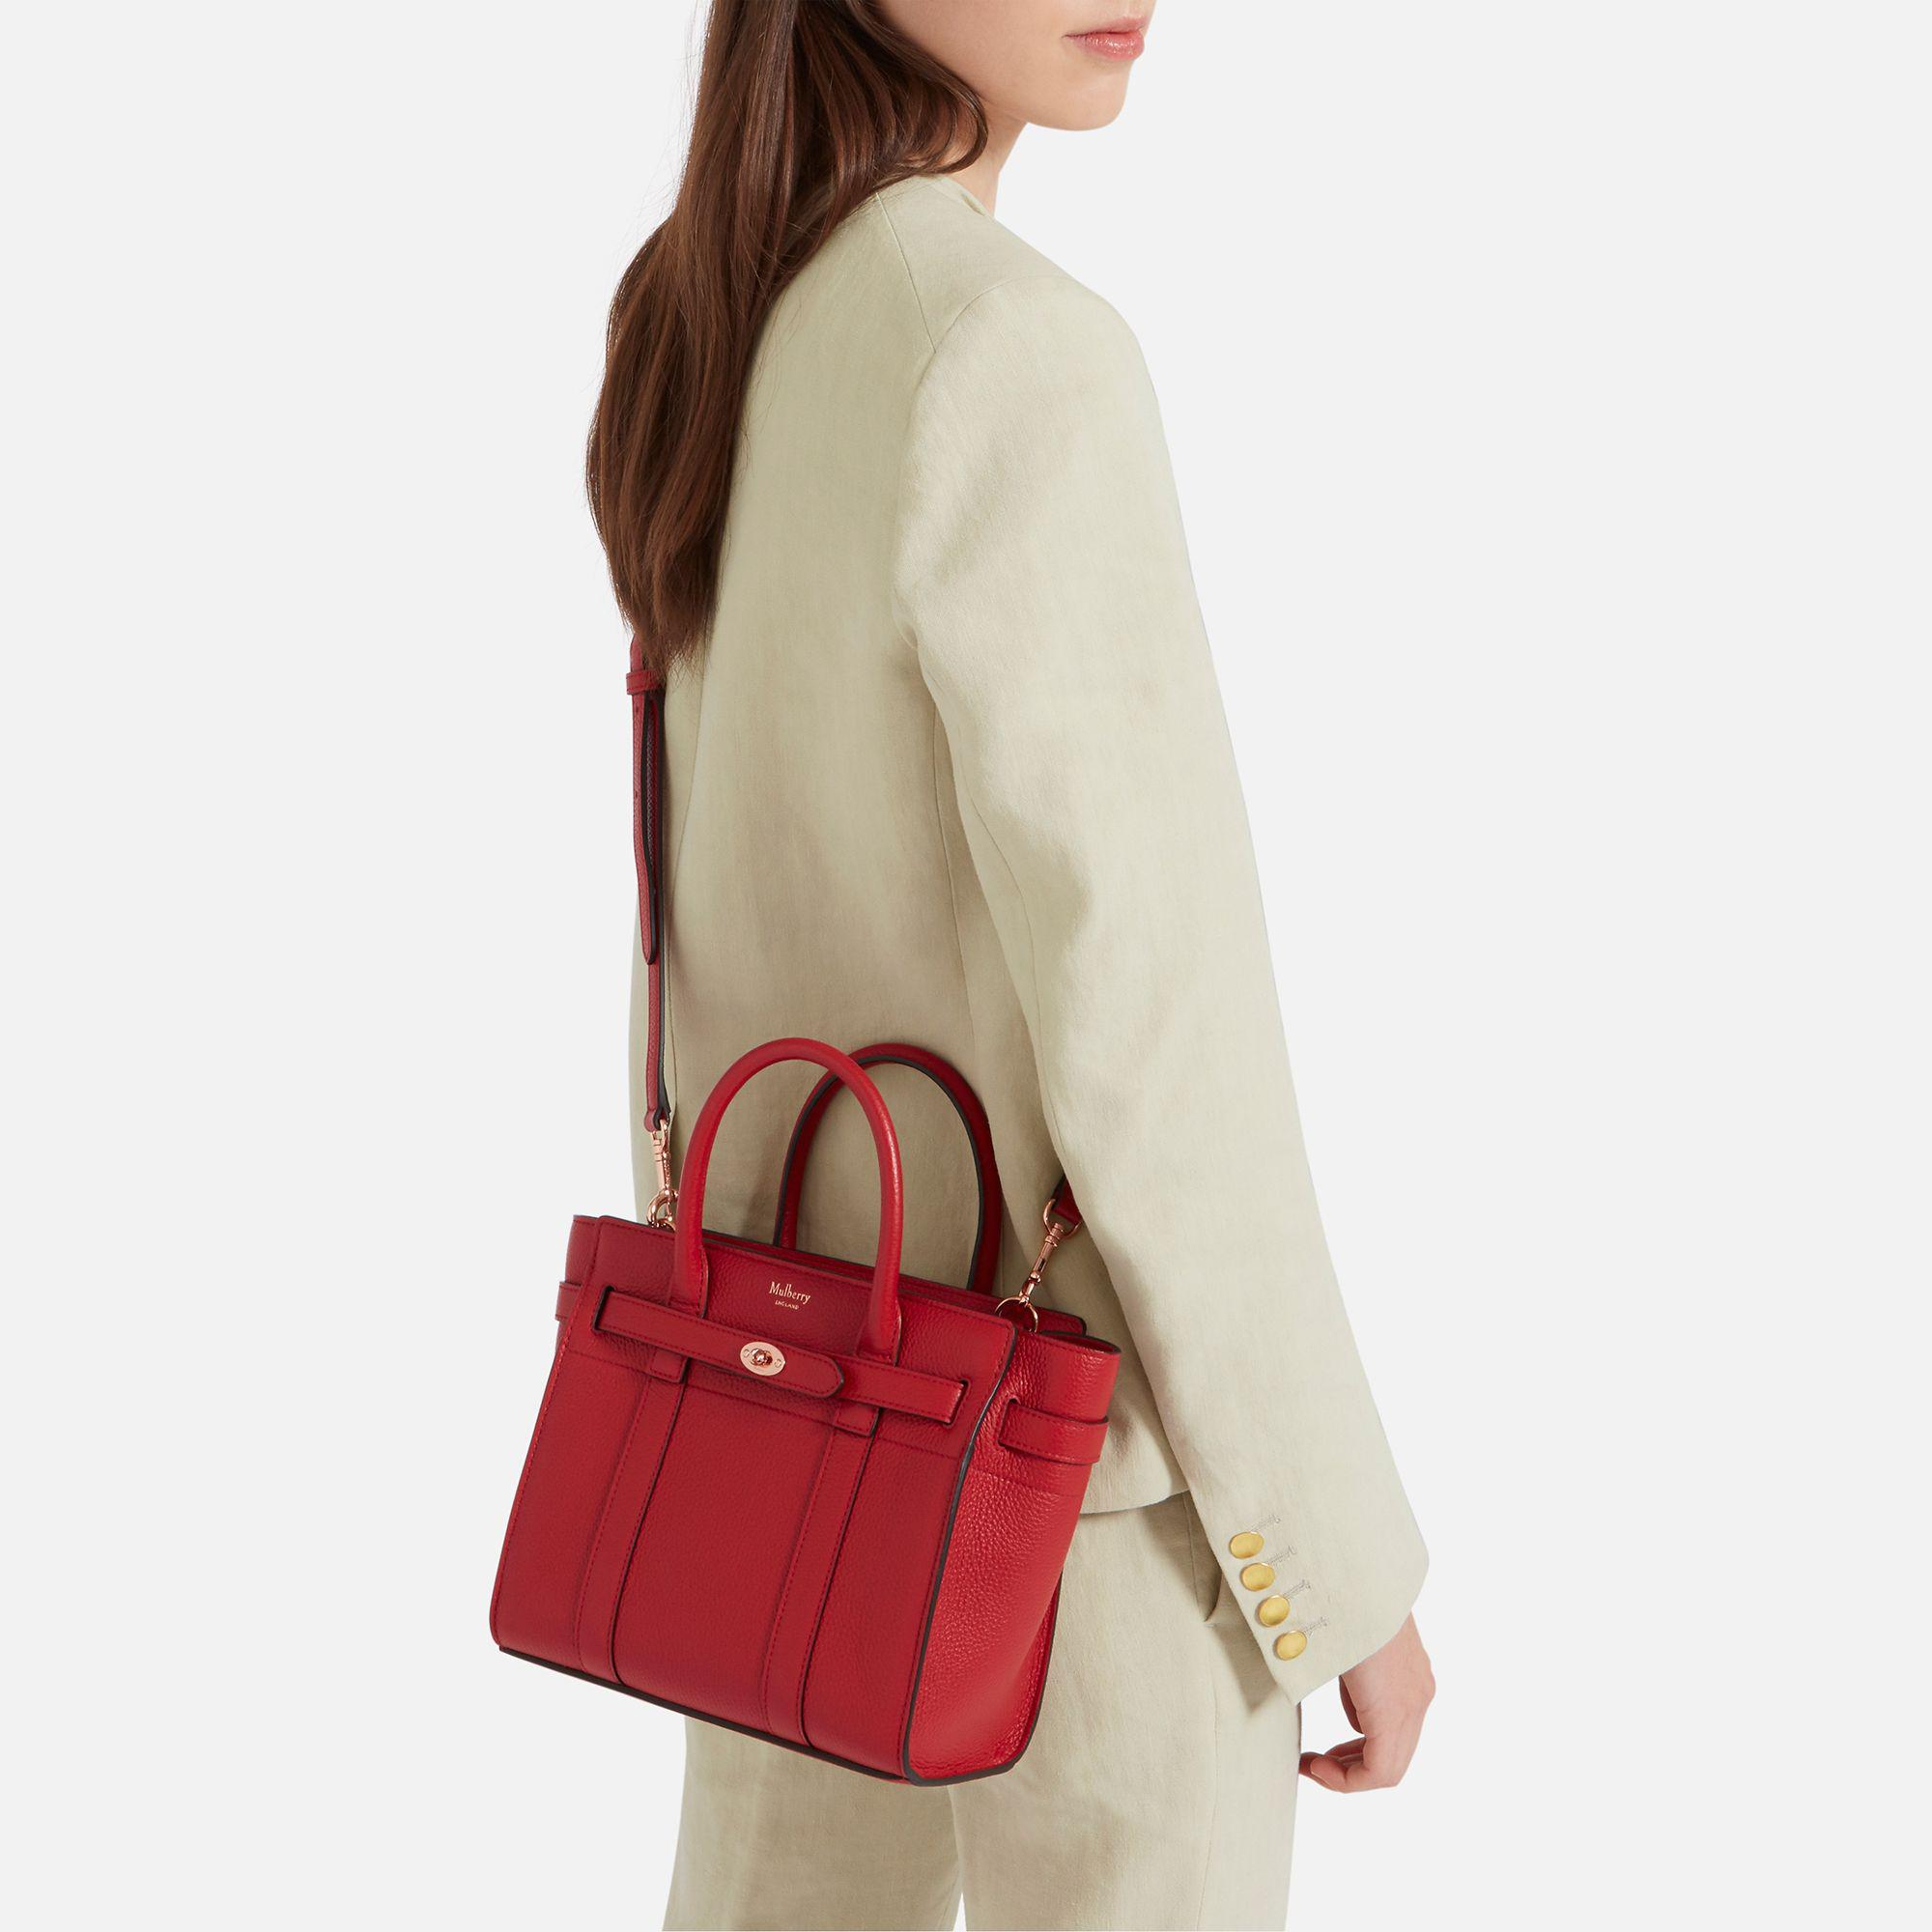 5ce7a37fa7dd Lyst - Mulberry Mini Zipped Bayswater in Red